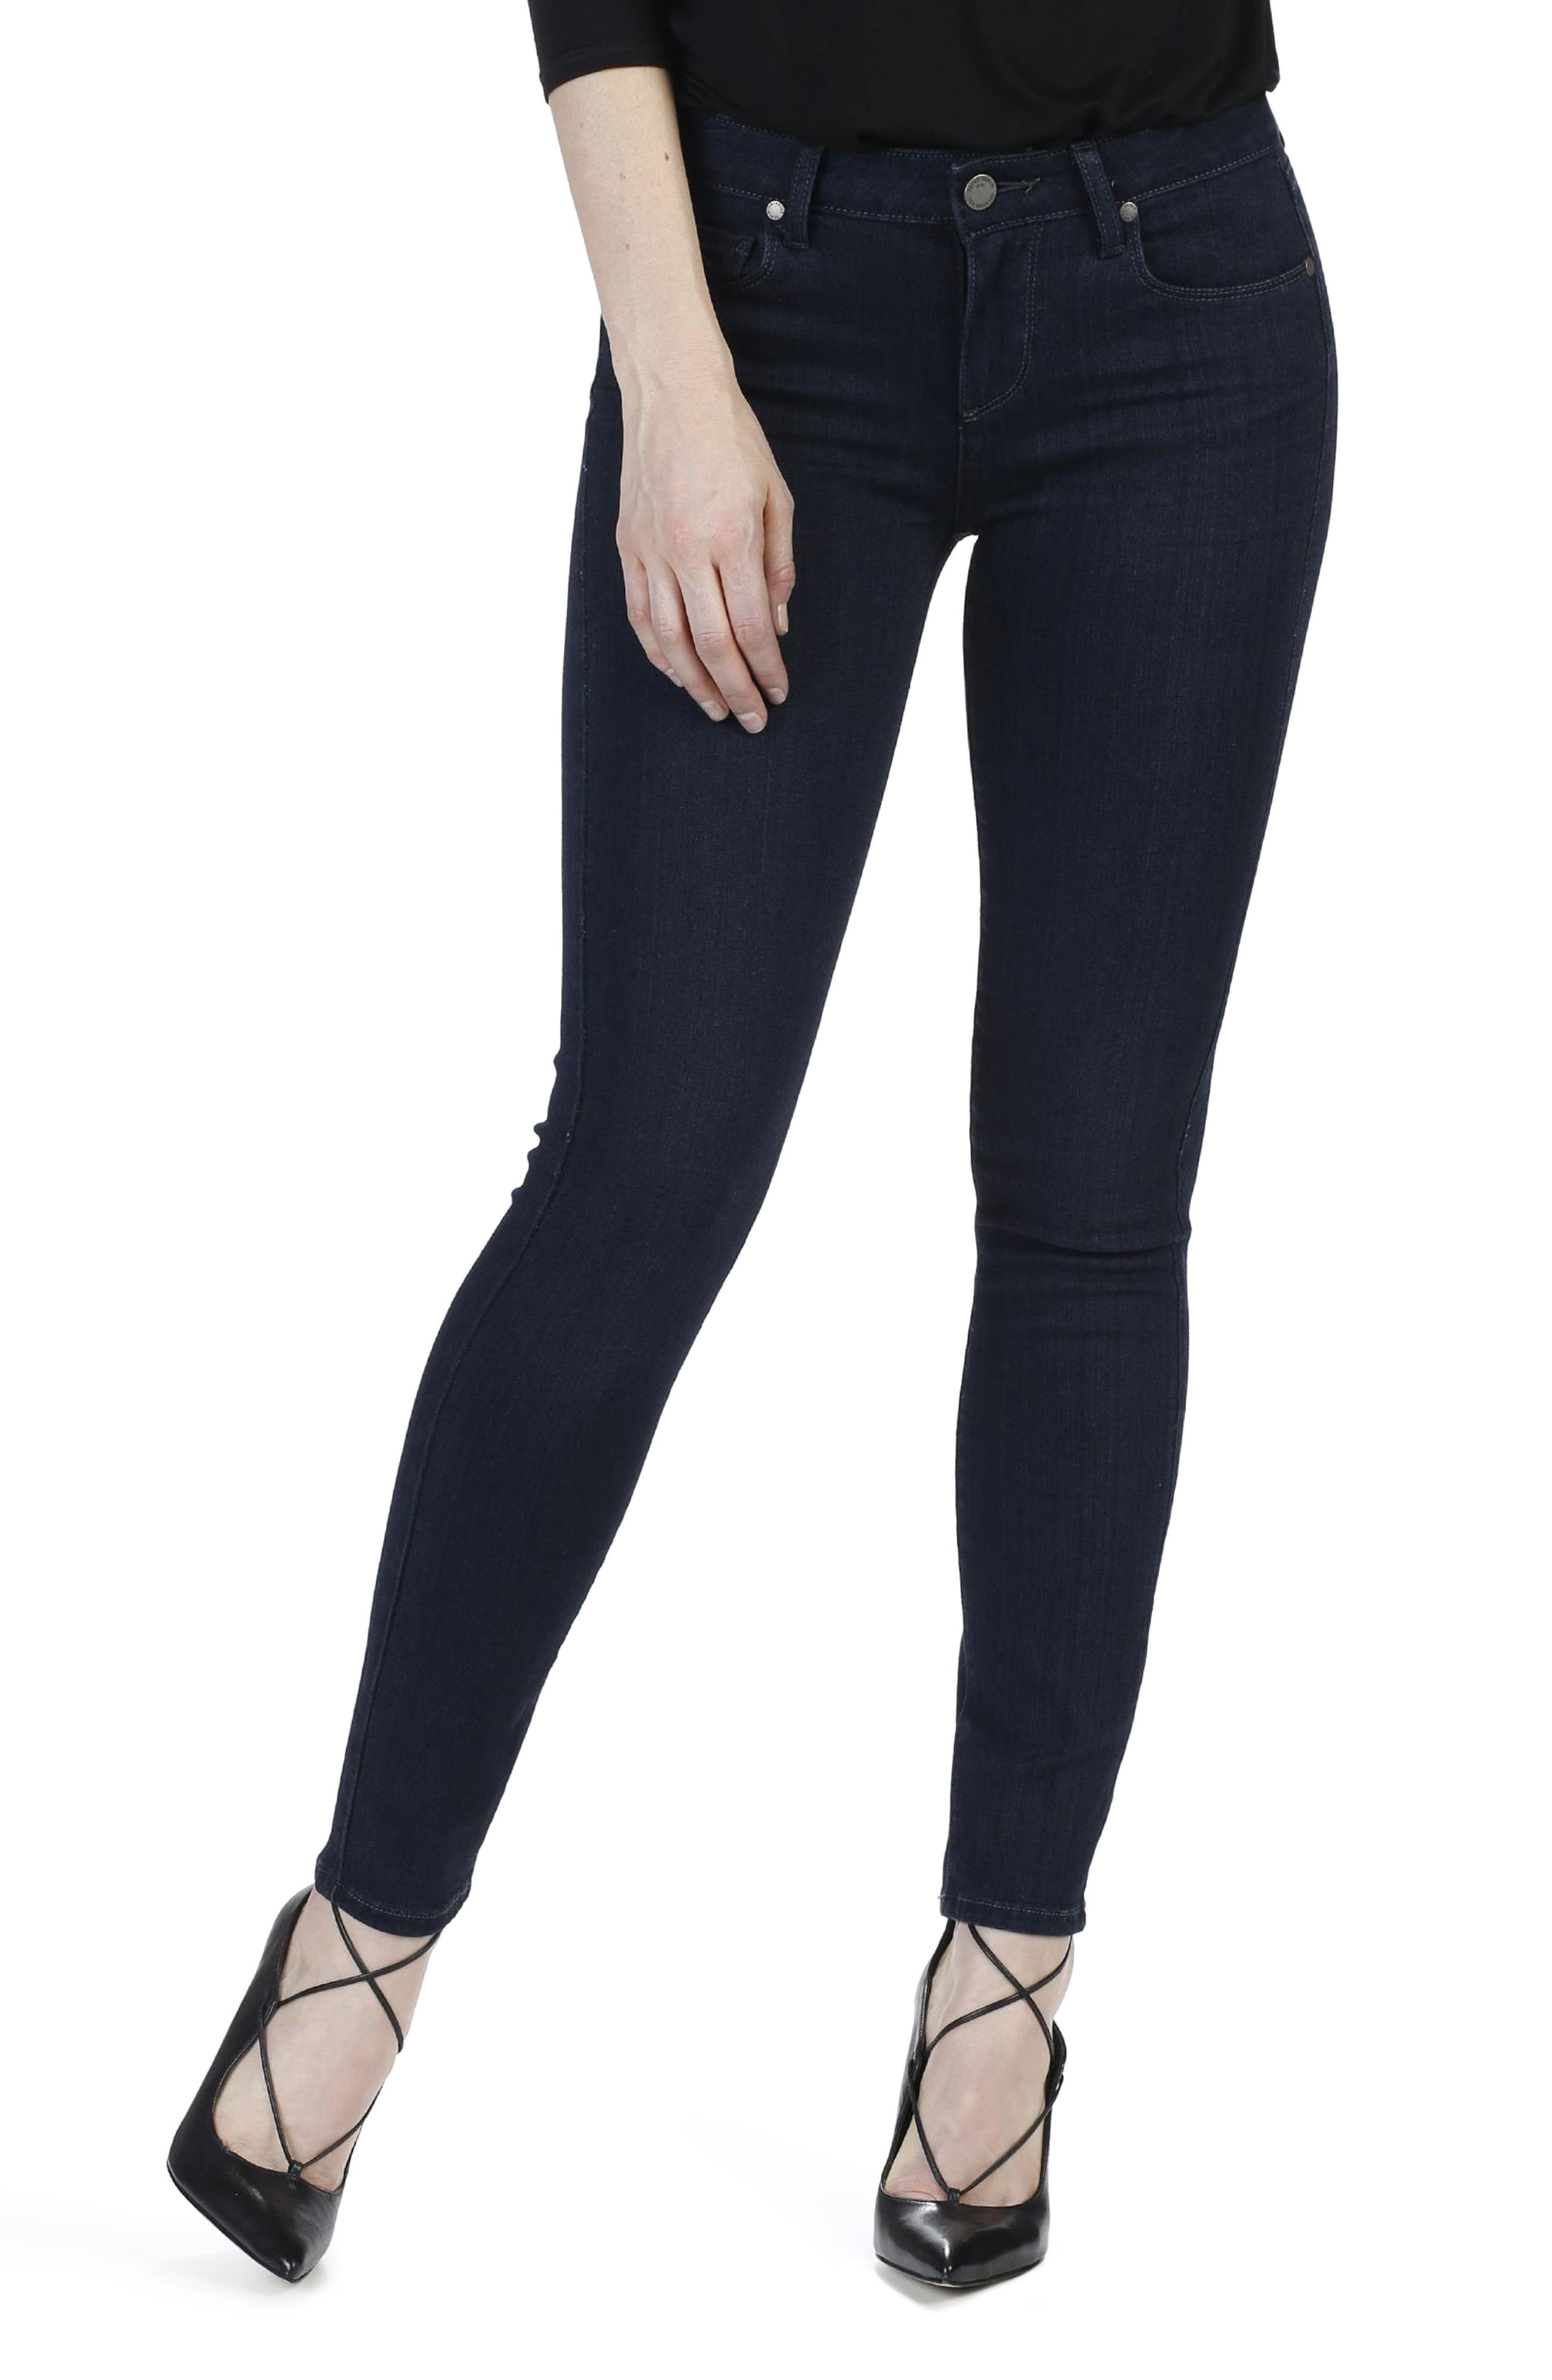 Main Image - PAIGE Transcend - Verdugo Ankle Ultra Skinny Jeans